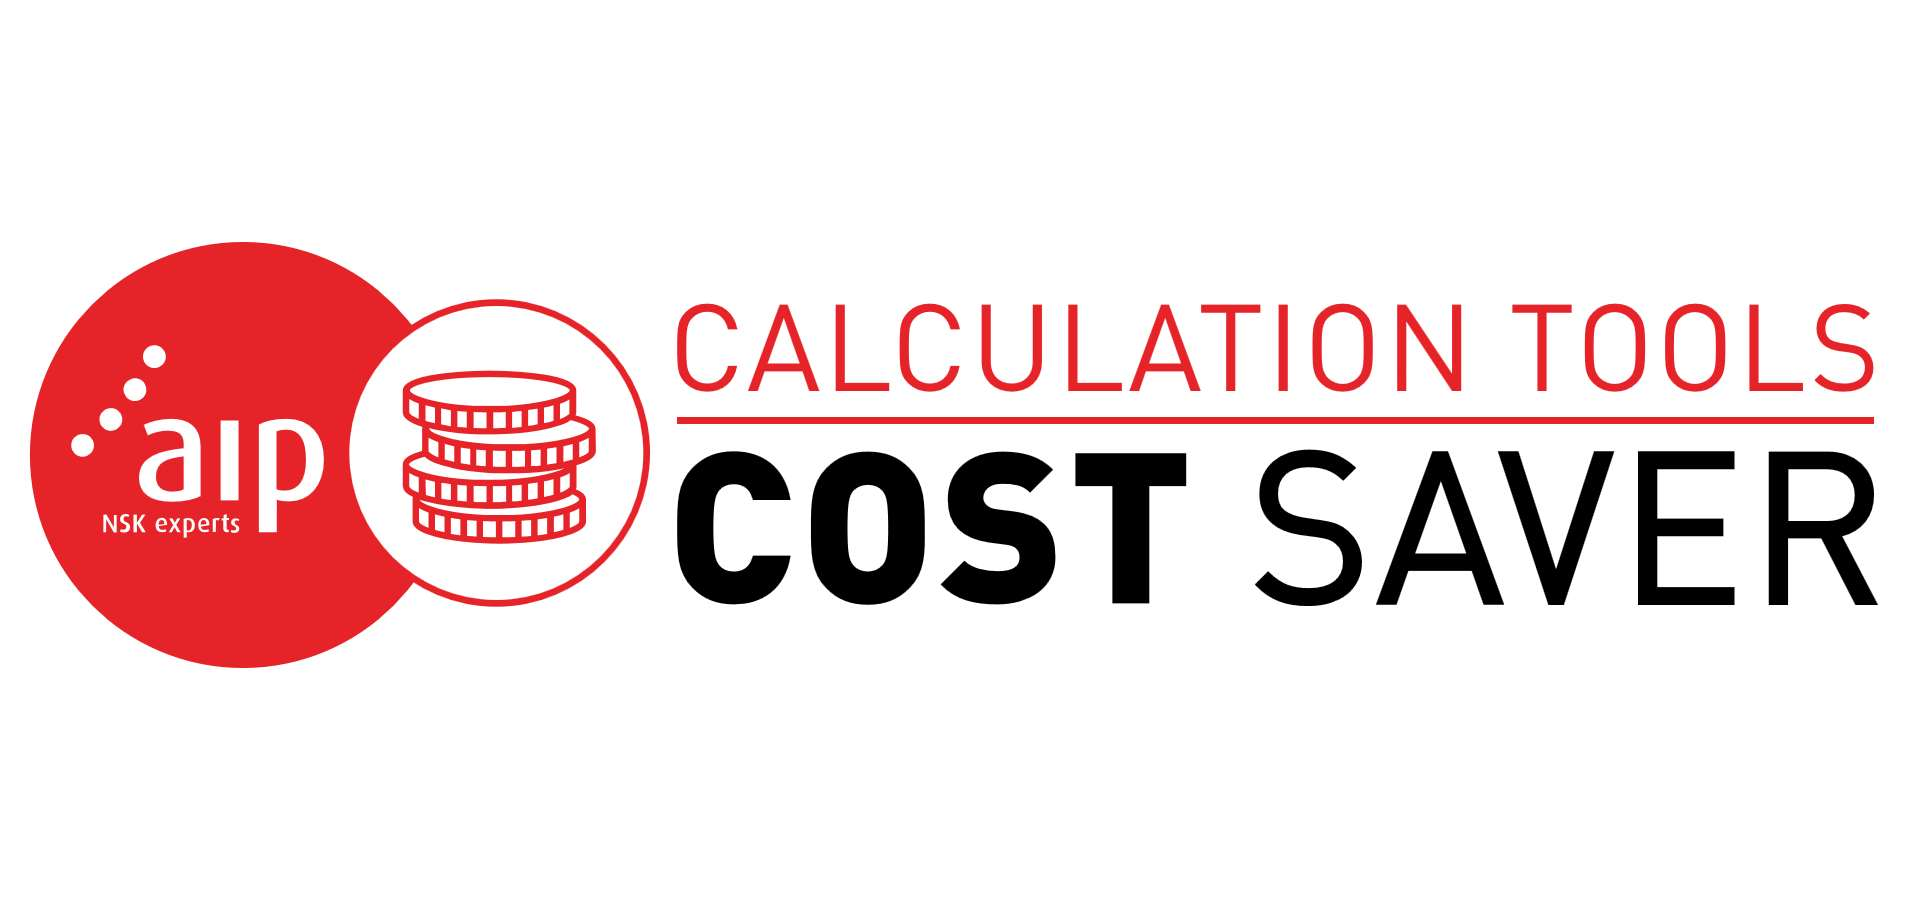 Calculation Tools, Cost Saver, Icon